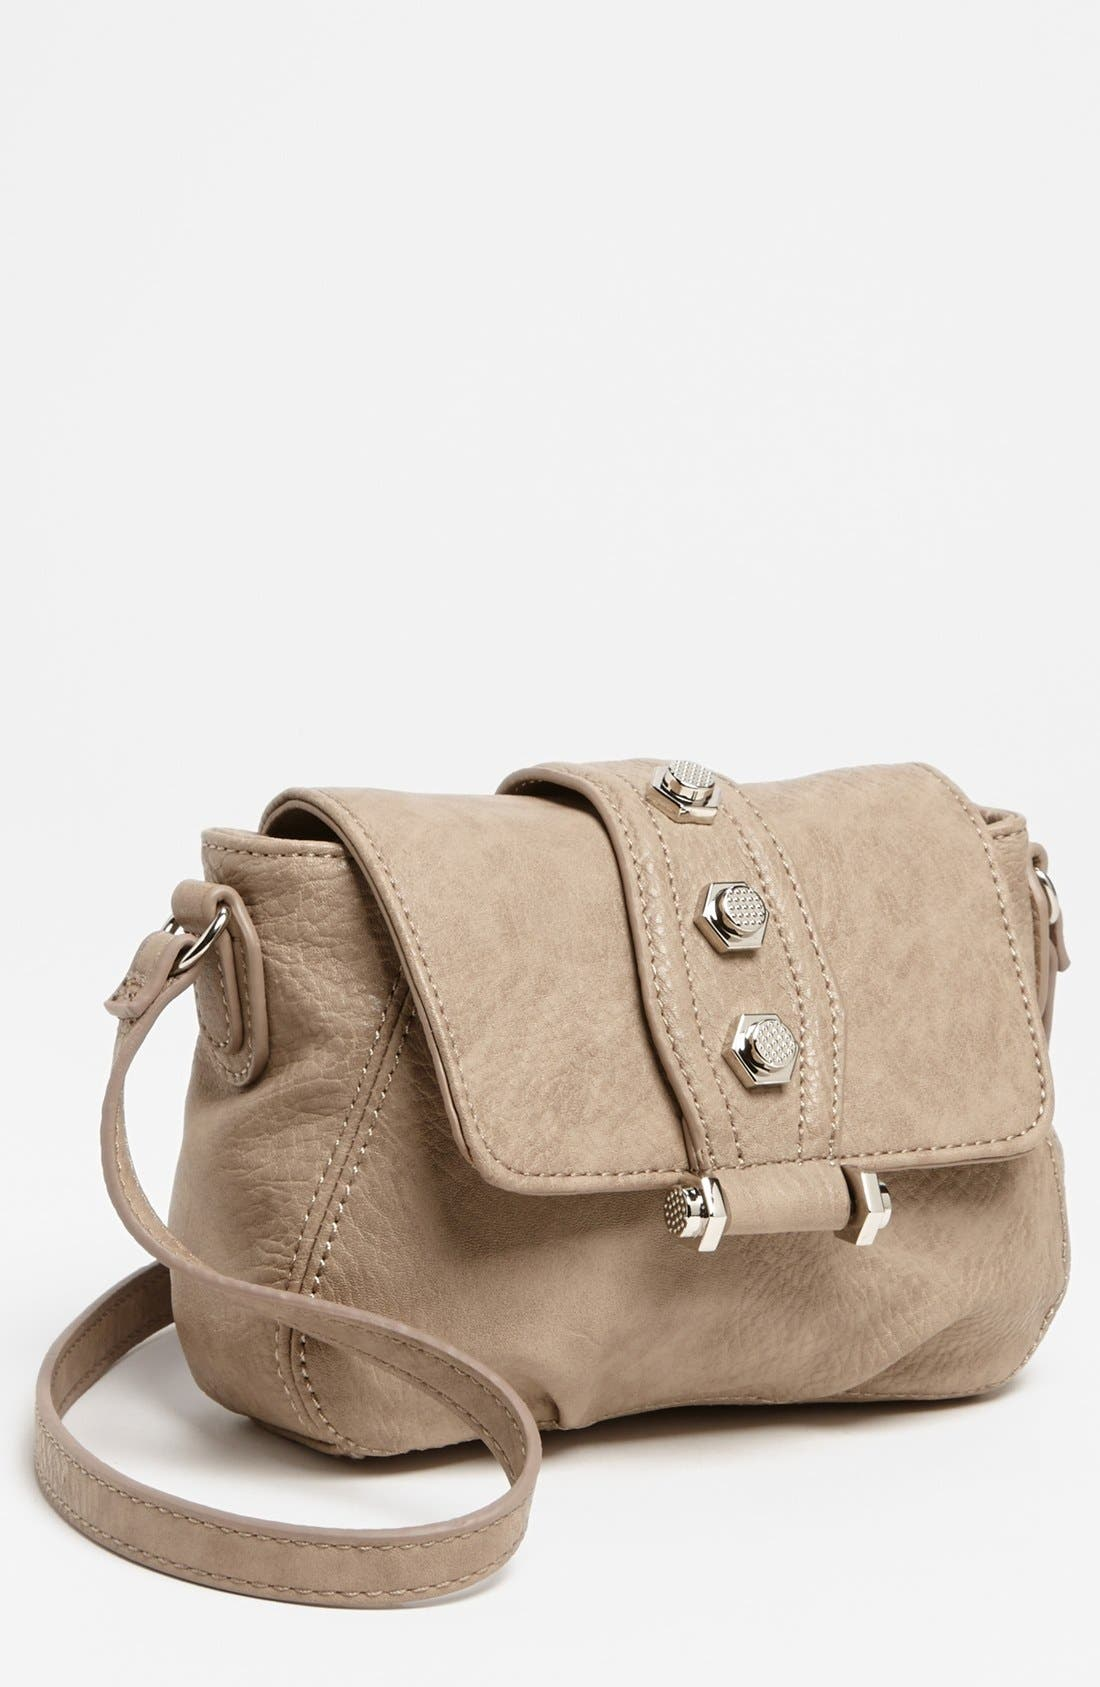 Alternate Image 1 Selected - Danielle Nicole 'Rocco' Crossbody Bag